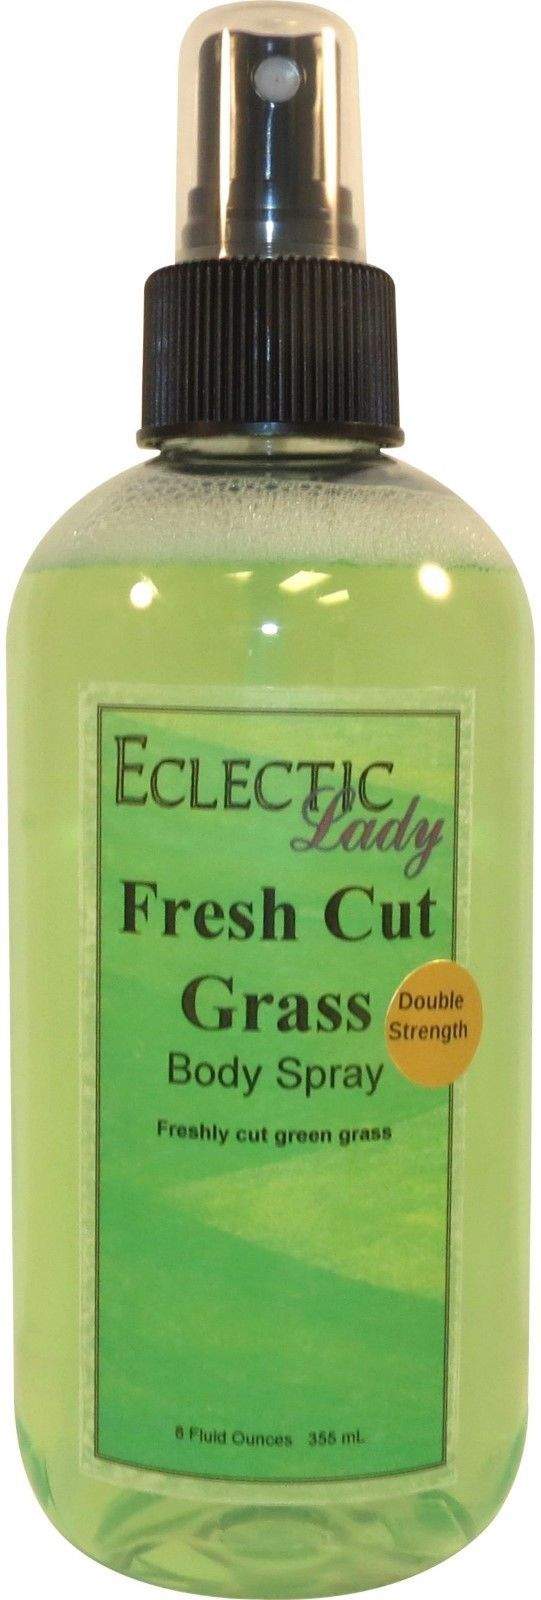 Fresh Cut Grass Body Spray